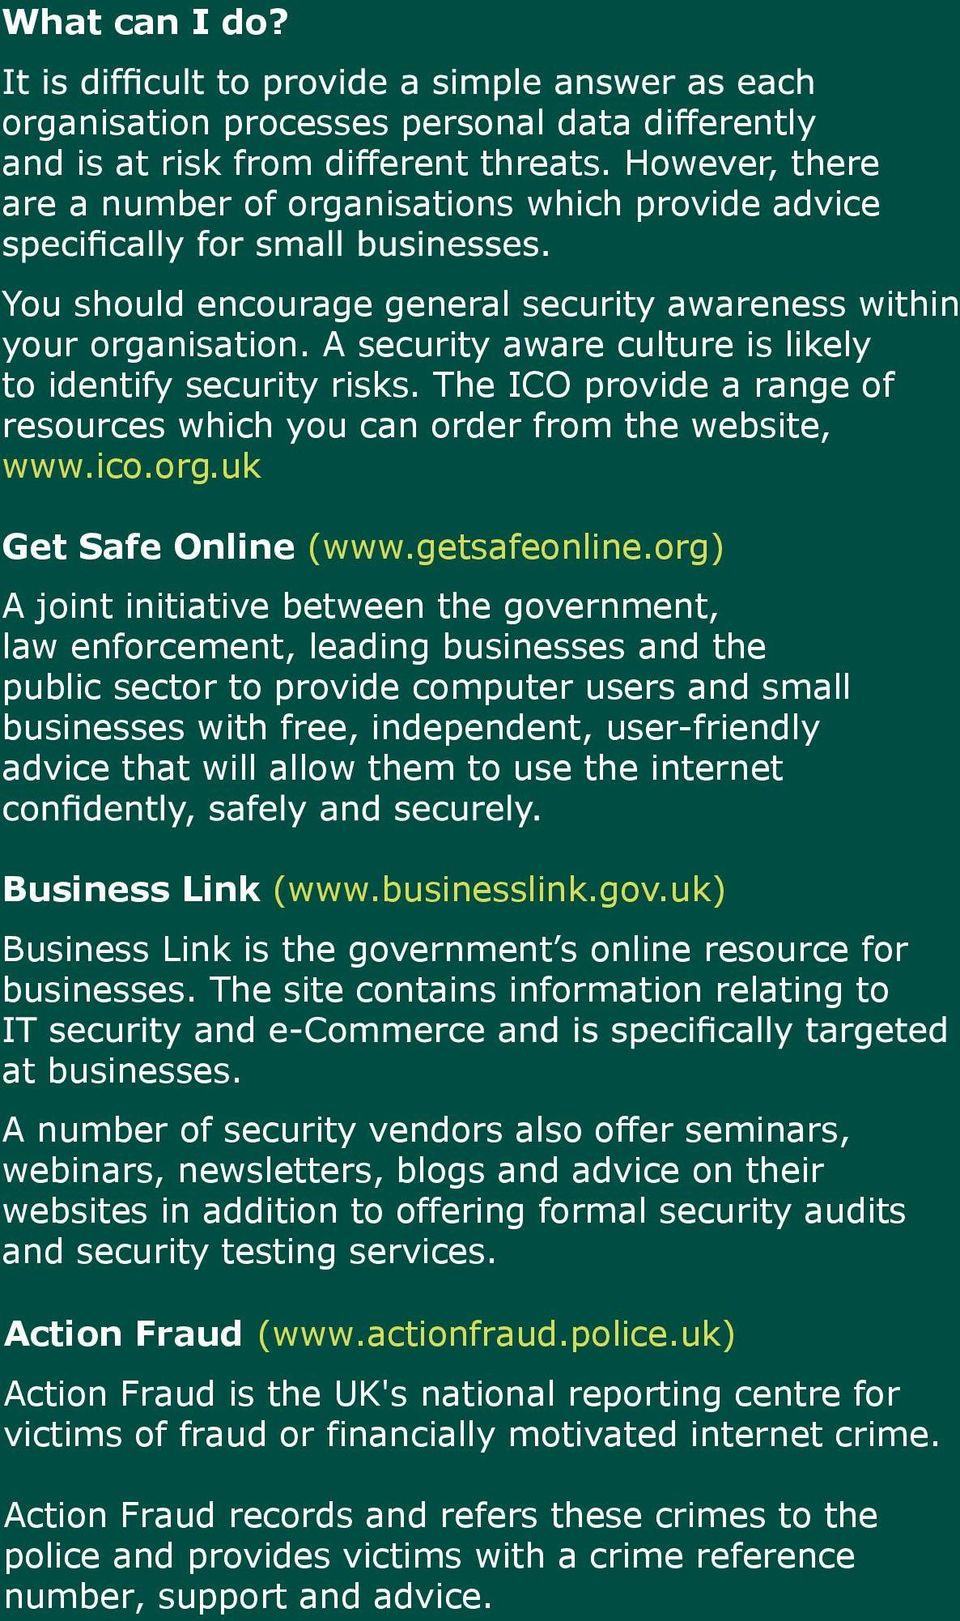 A security aware culture is likely to identify security risks. The ICO provide a range of resources which you can order from the website, www.ico.org.uk Get Safe Online (www.getsafeonline.